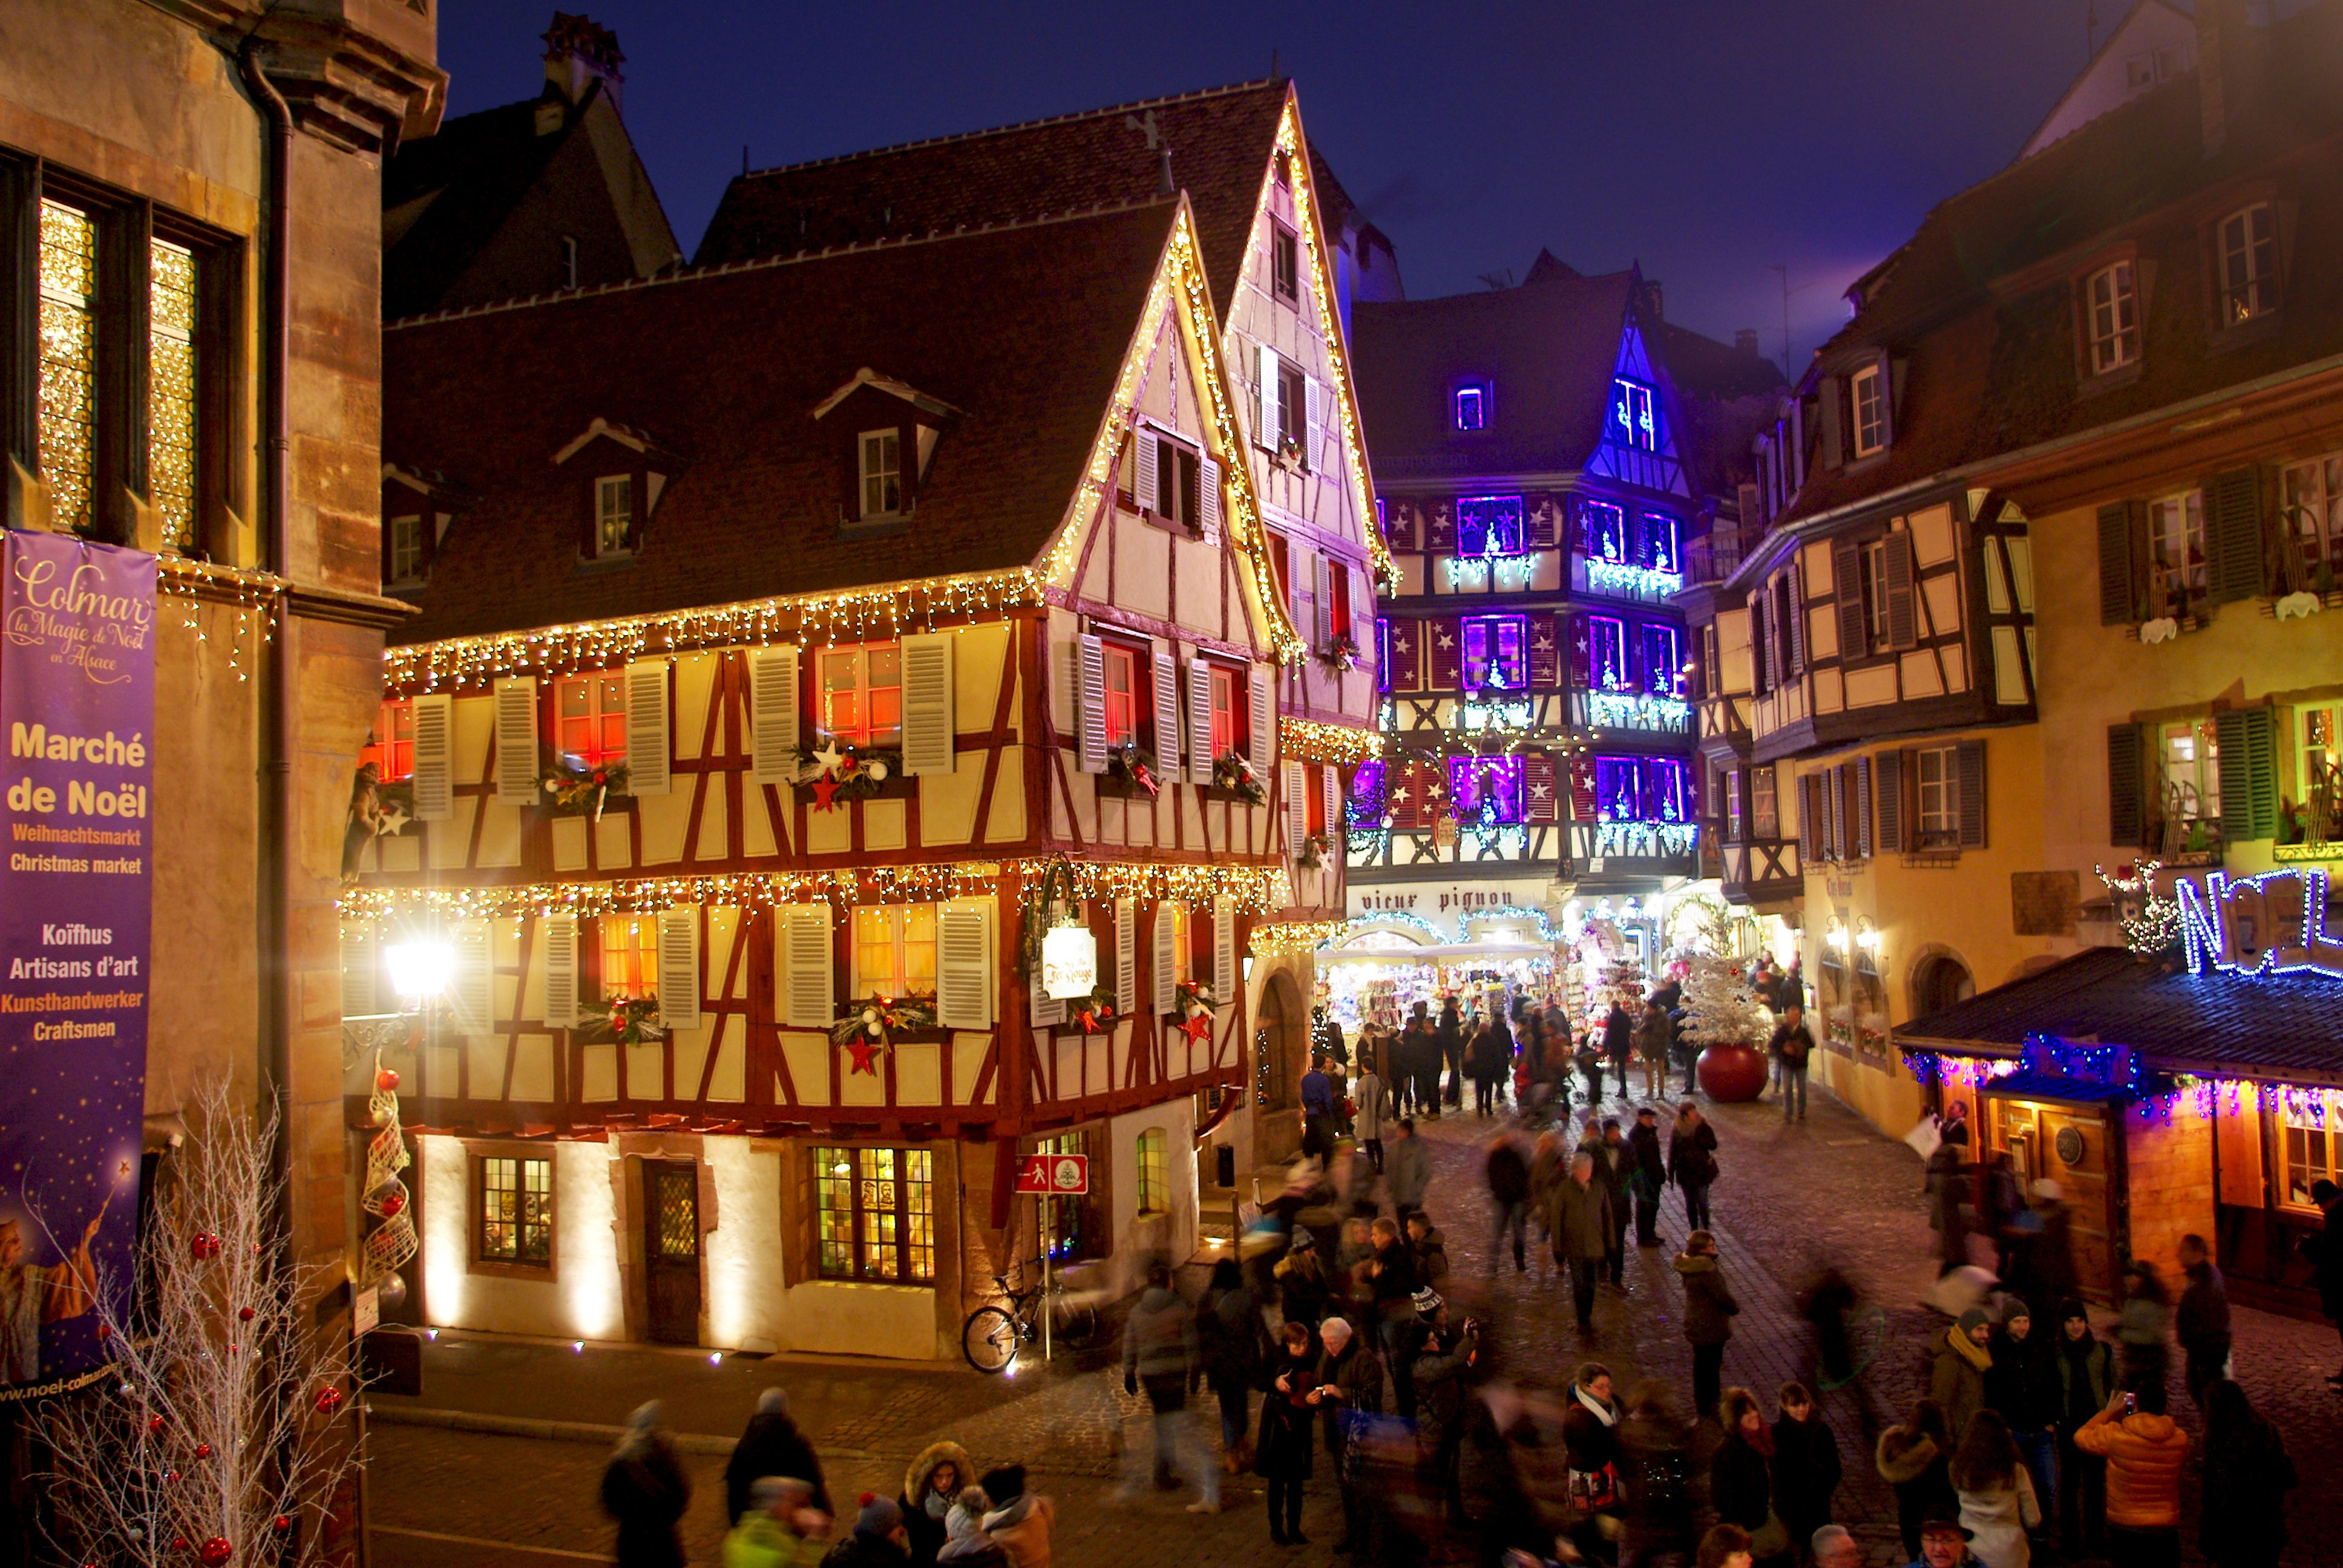 Colmar Christmas Market.Colmar Christmas Market France Old Town Alsace Great